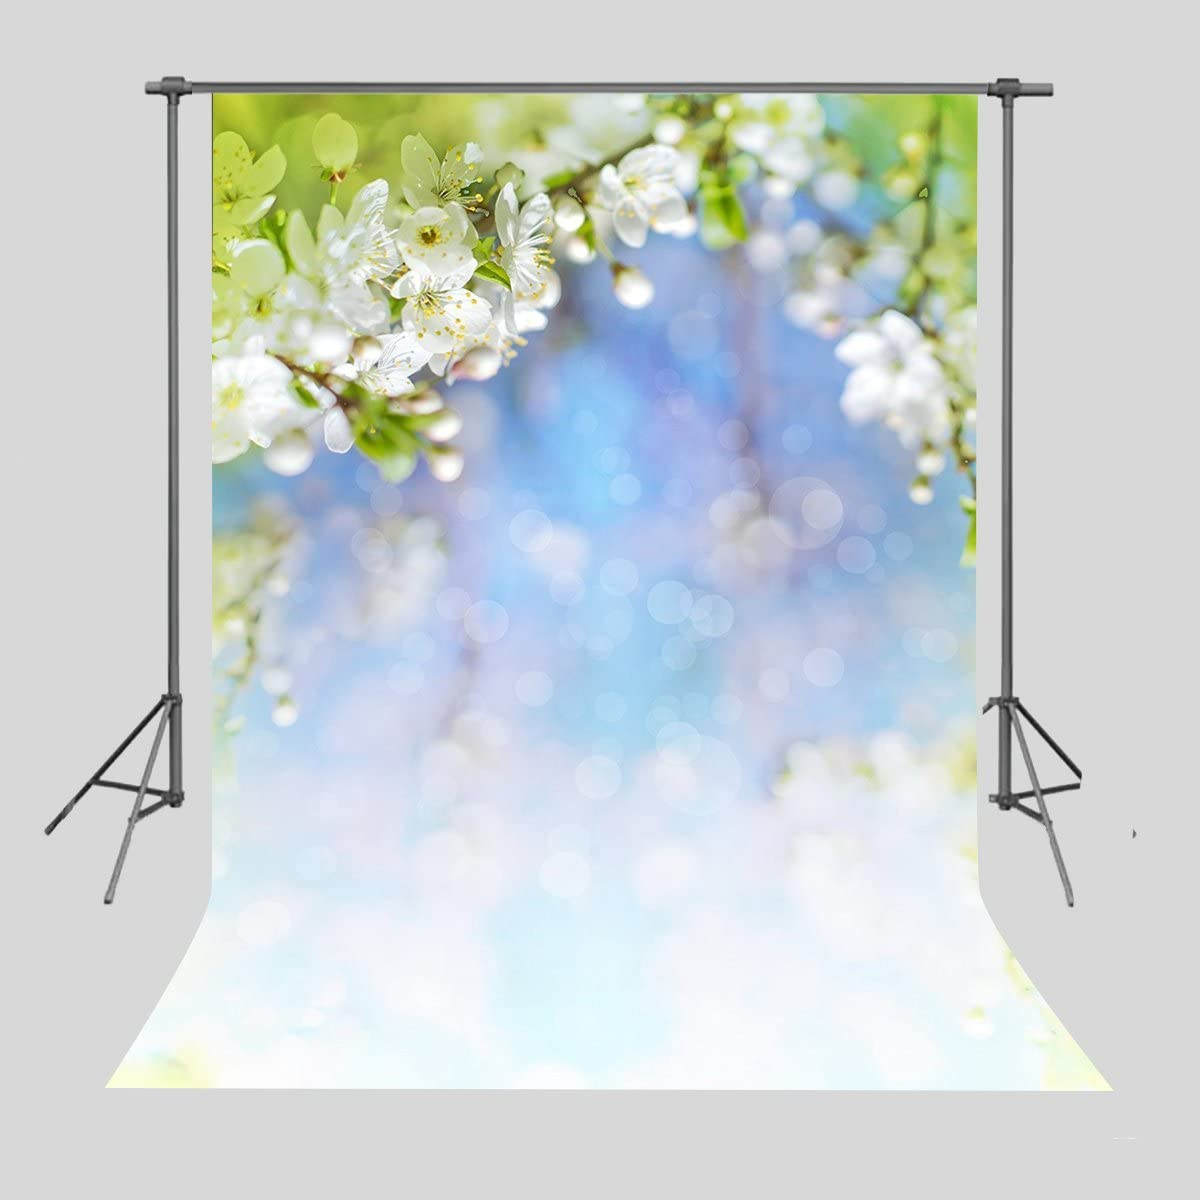 FUERMOR 7x5ft Flowers Painting Backdrop Photography Floral Wall Photo Booth Banner Art Studio Props WQFU062